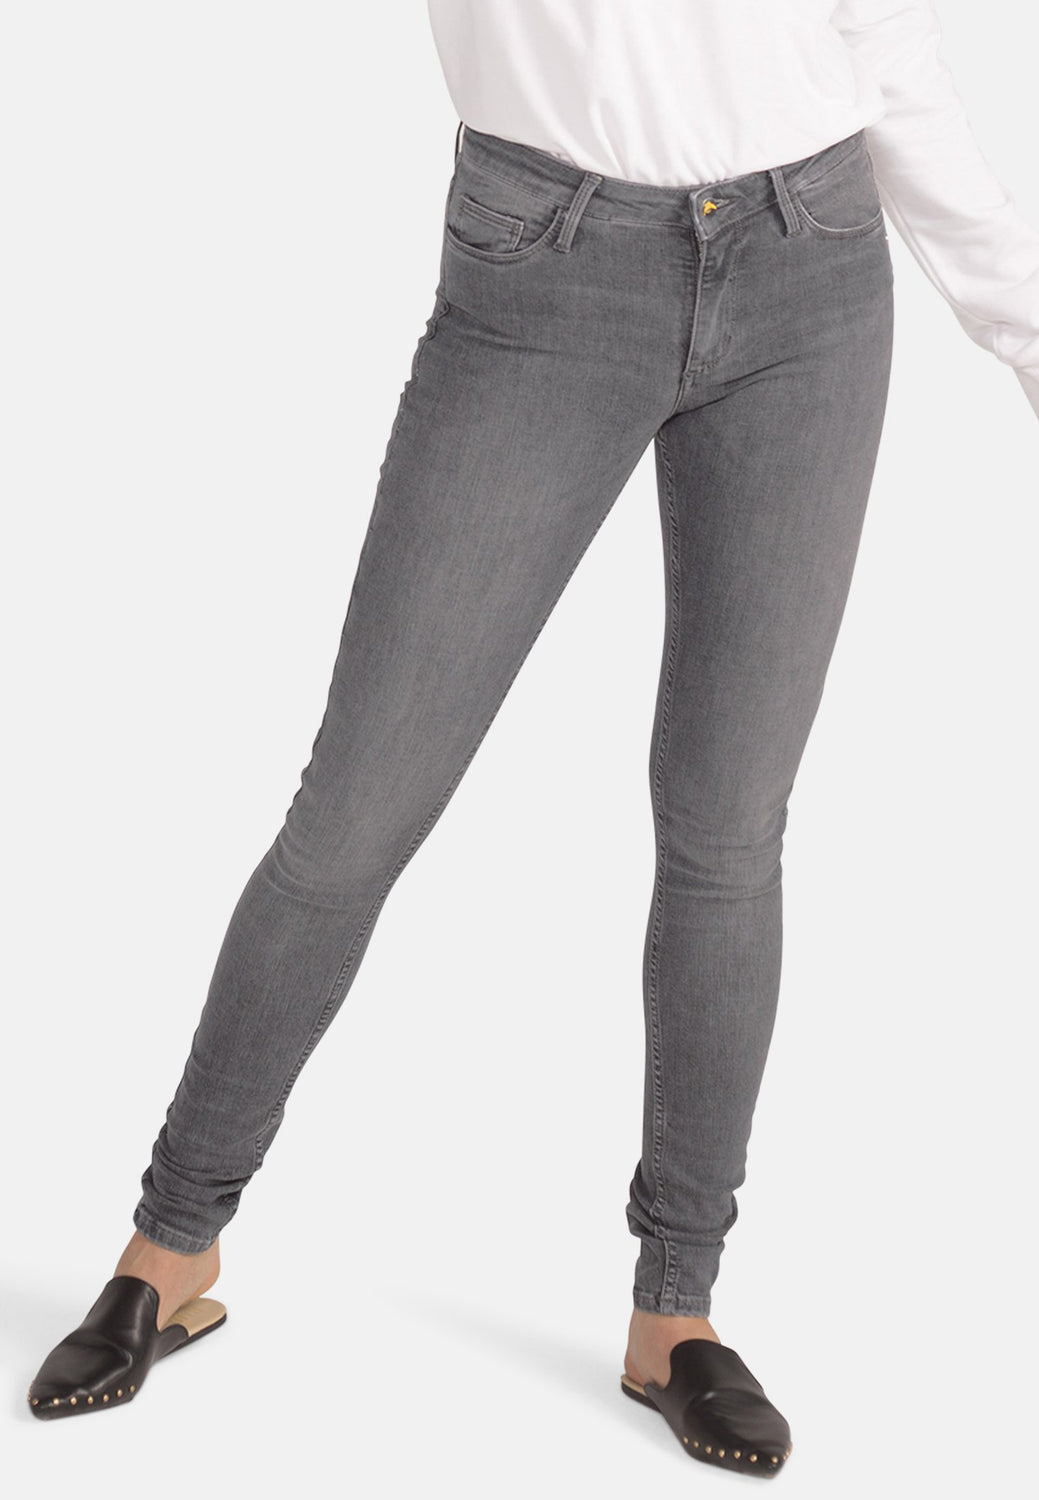 Organic Flex Super Skinny Jeans in Light Grey - Monkee Genes, Organic Jeans, Eco Jeans, Sustainable Jeans, Green Jeans, Ethical Fashion, Mens Chinos